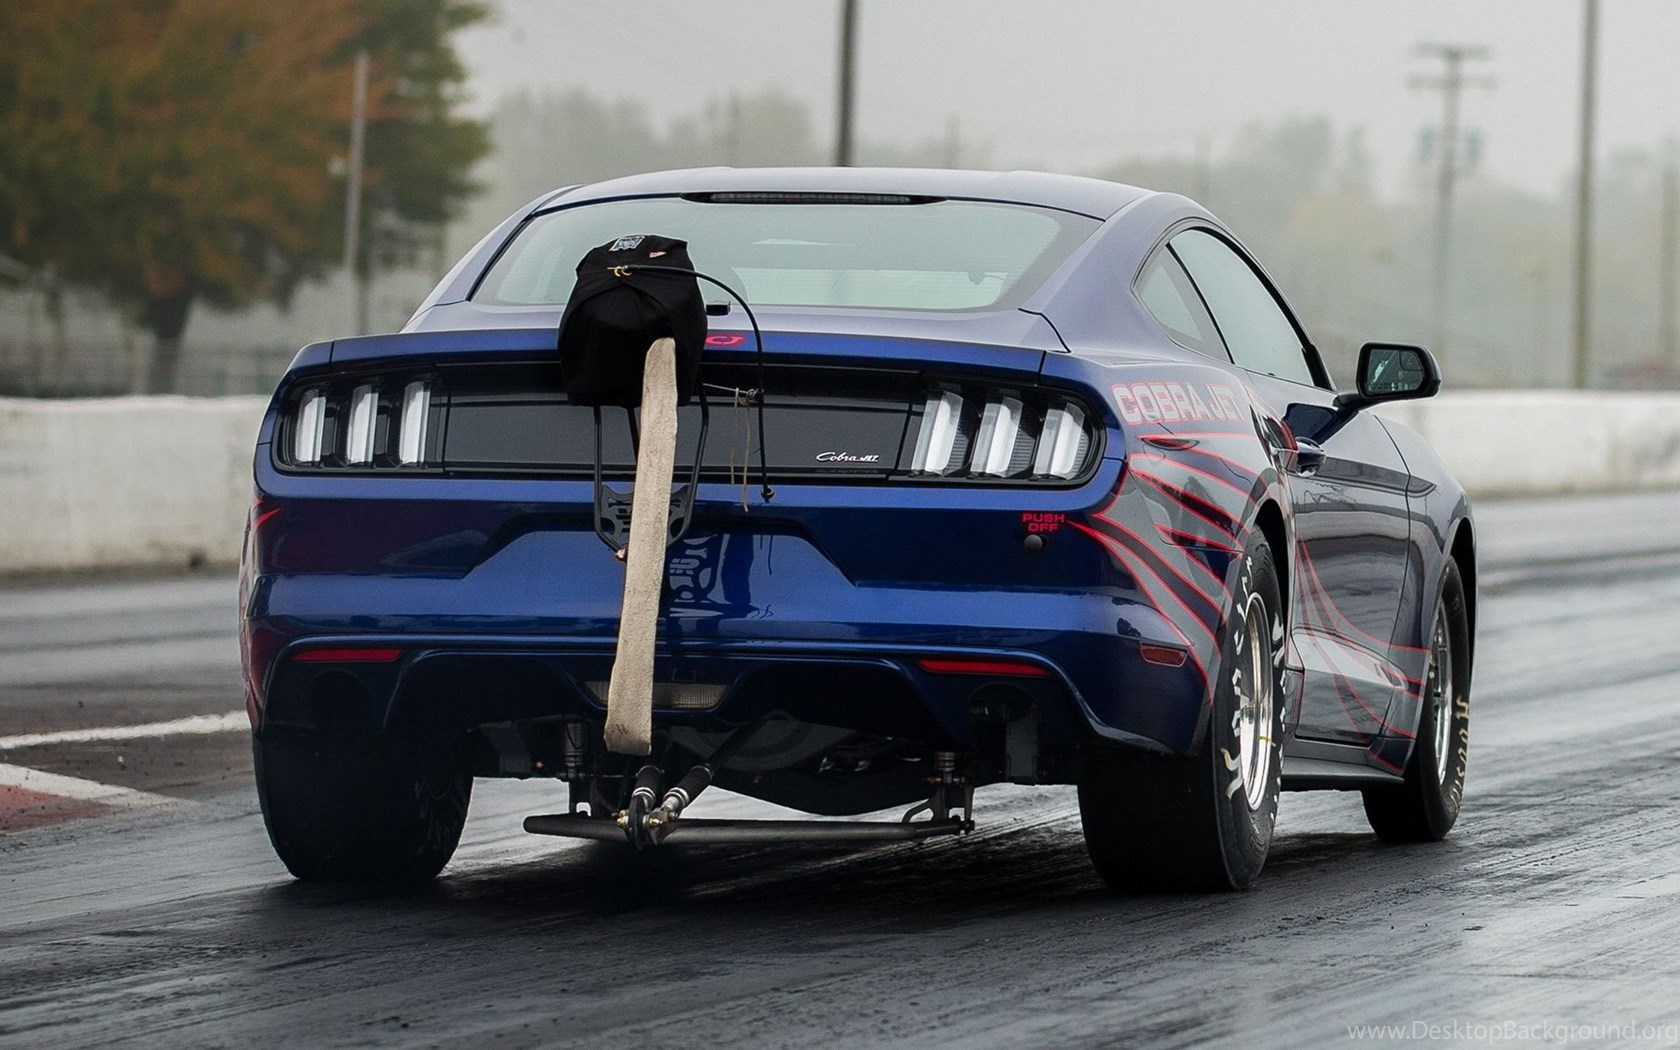 Ford Mustang Cobra Jet Drag Car 2016 Wallpapers And Hd Images